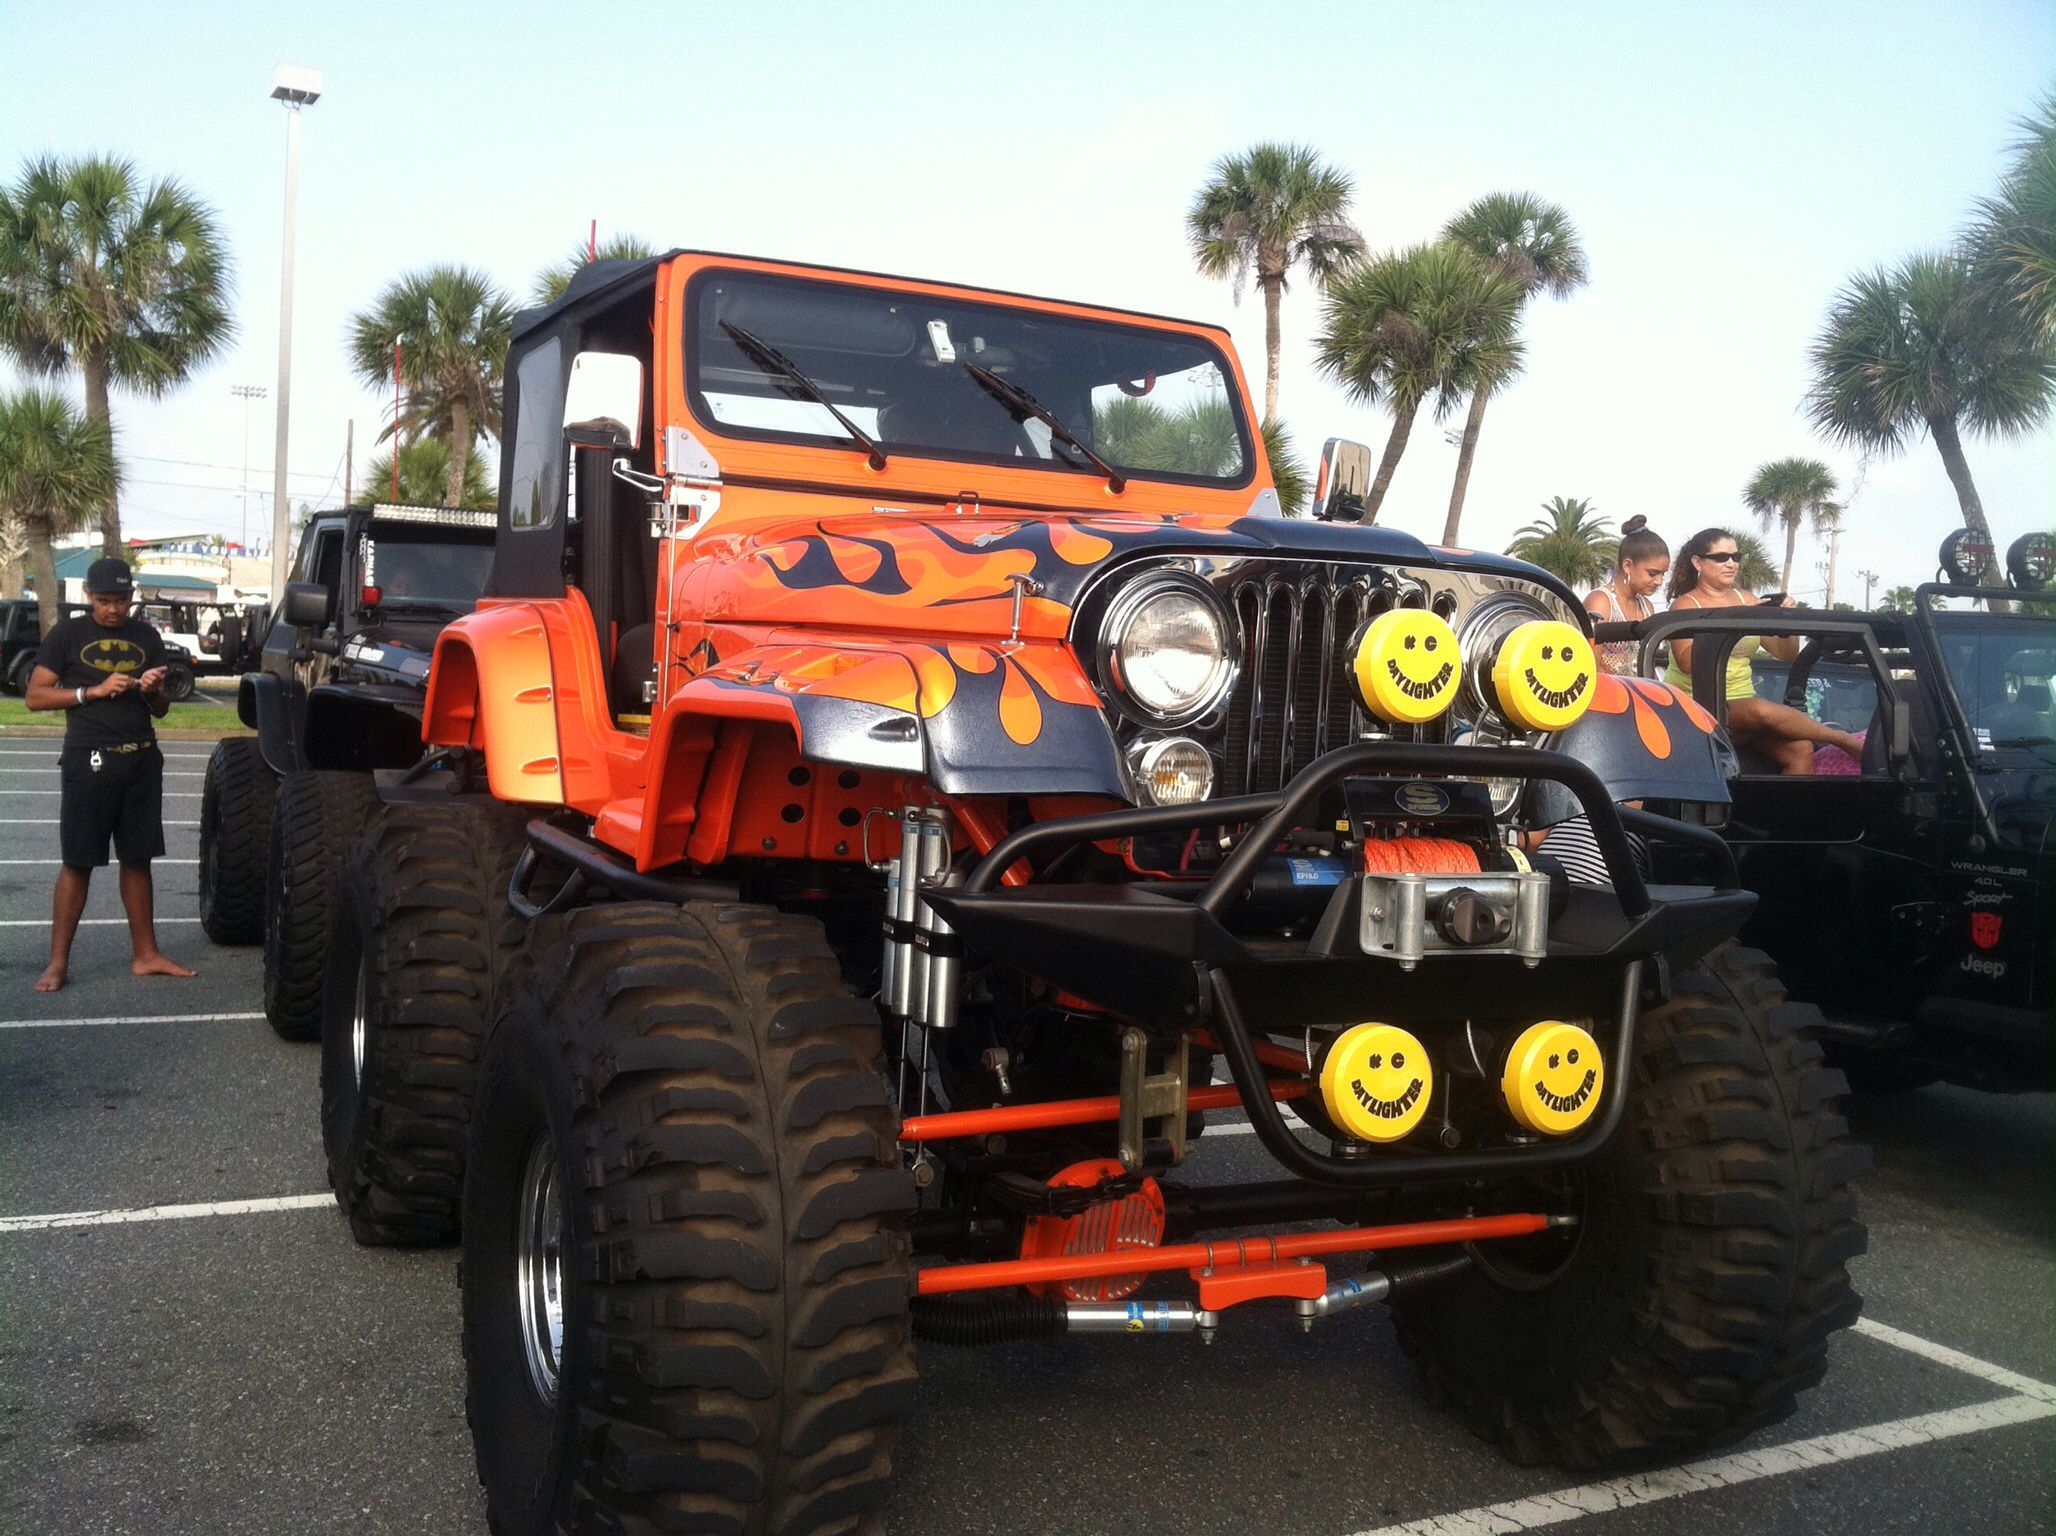 Jeep Beach 2014 Monster trucks, Jeep, Classic cars